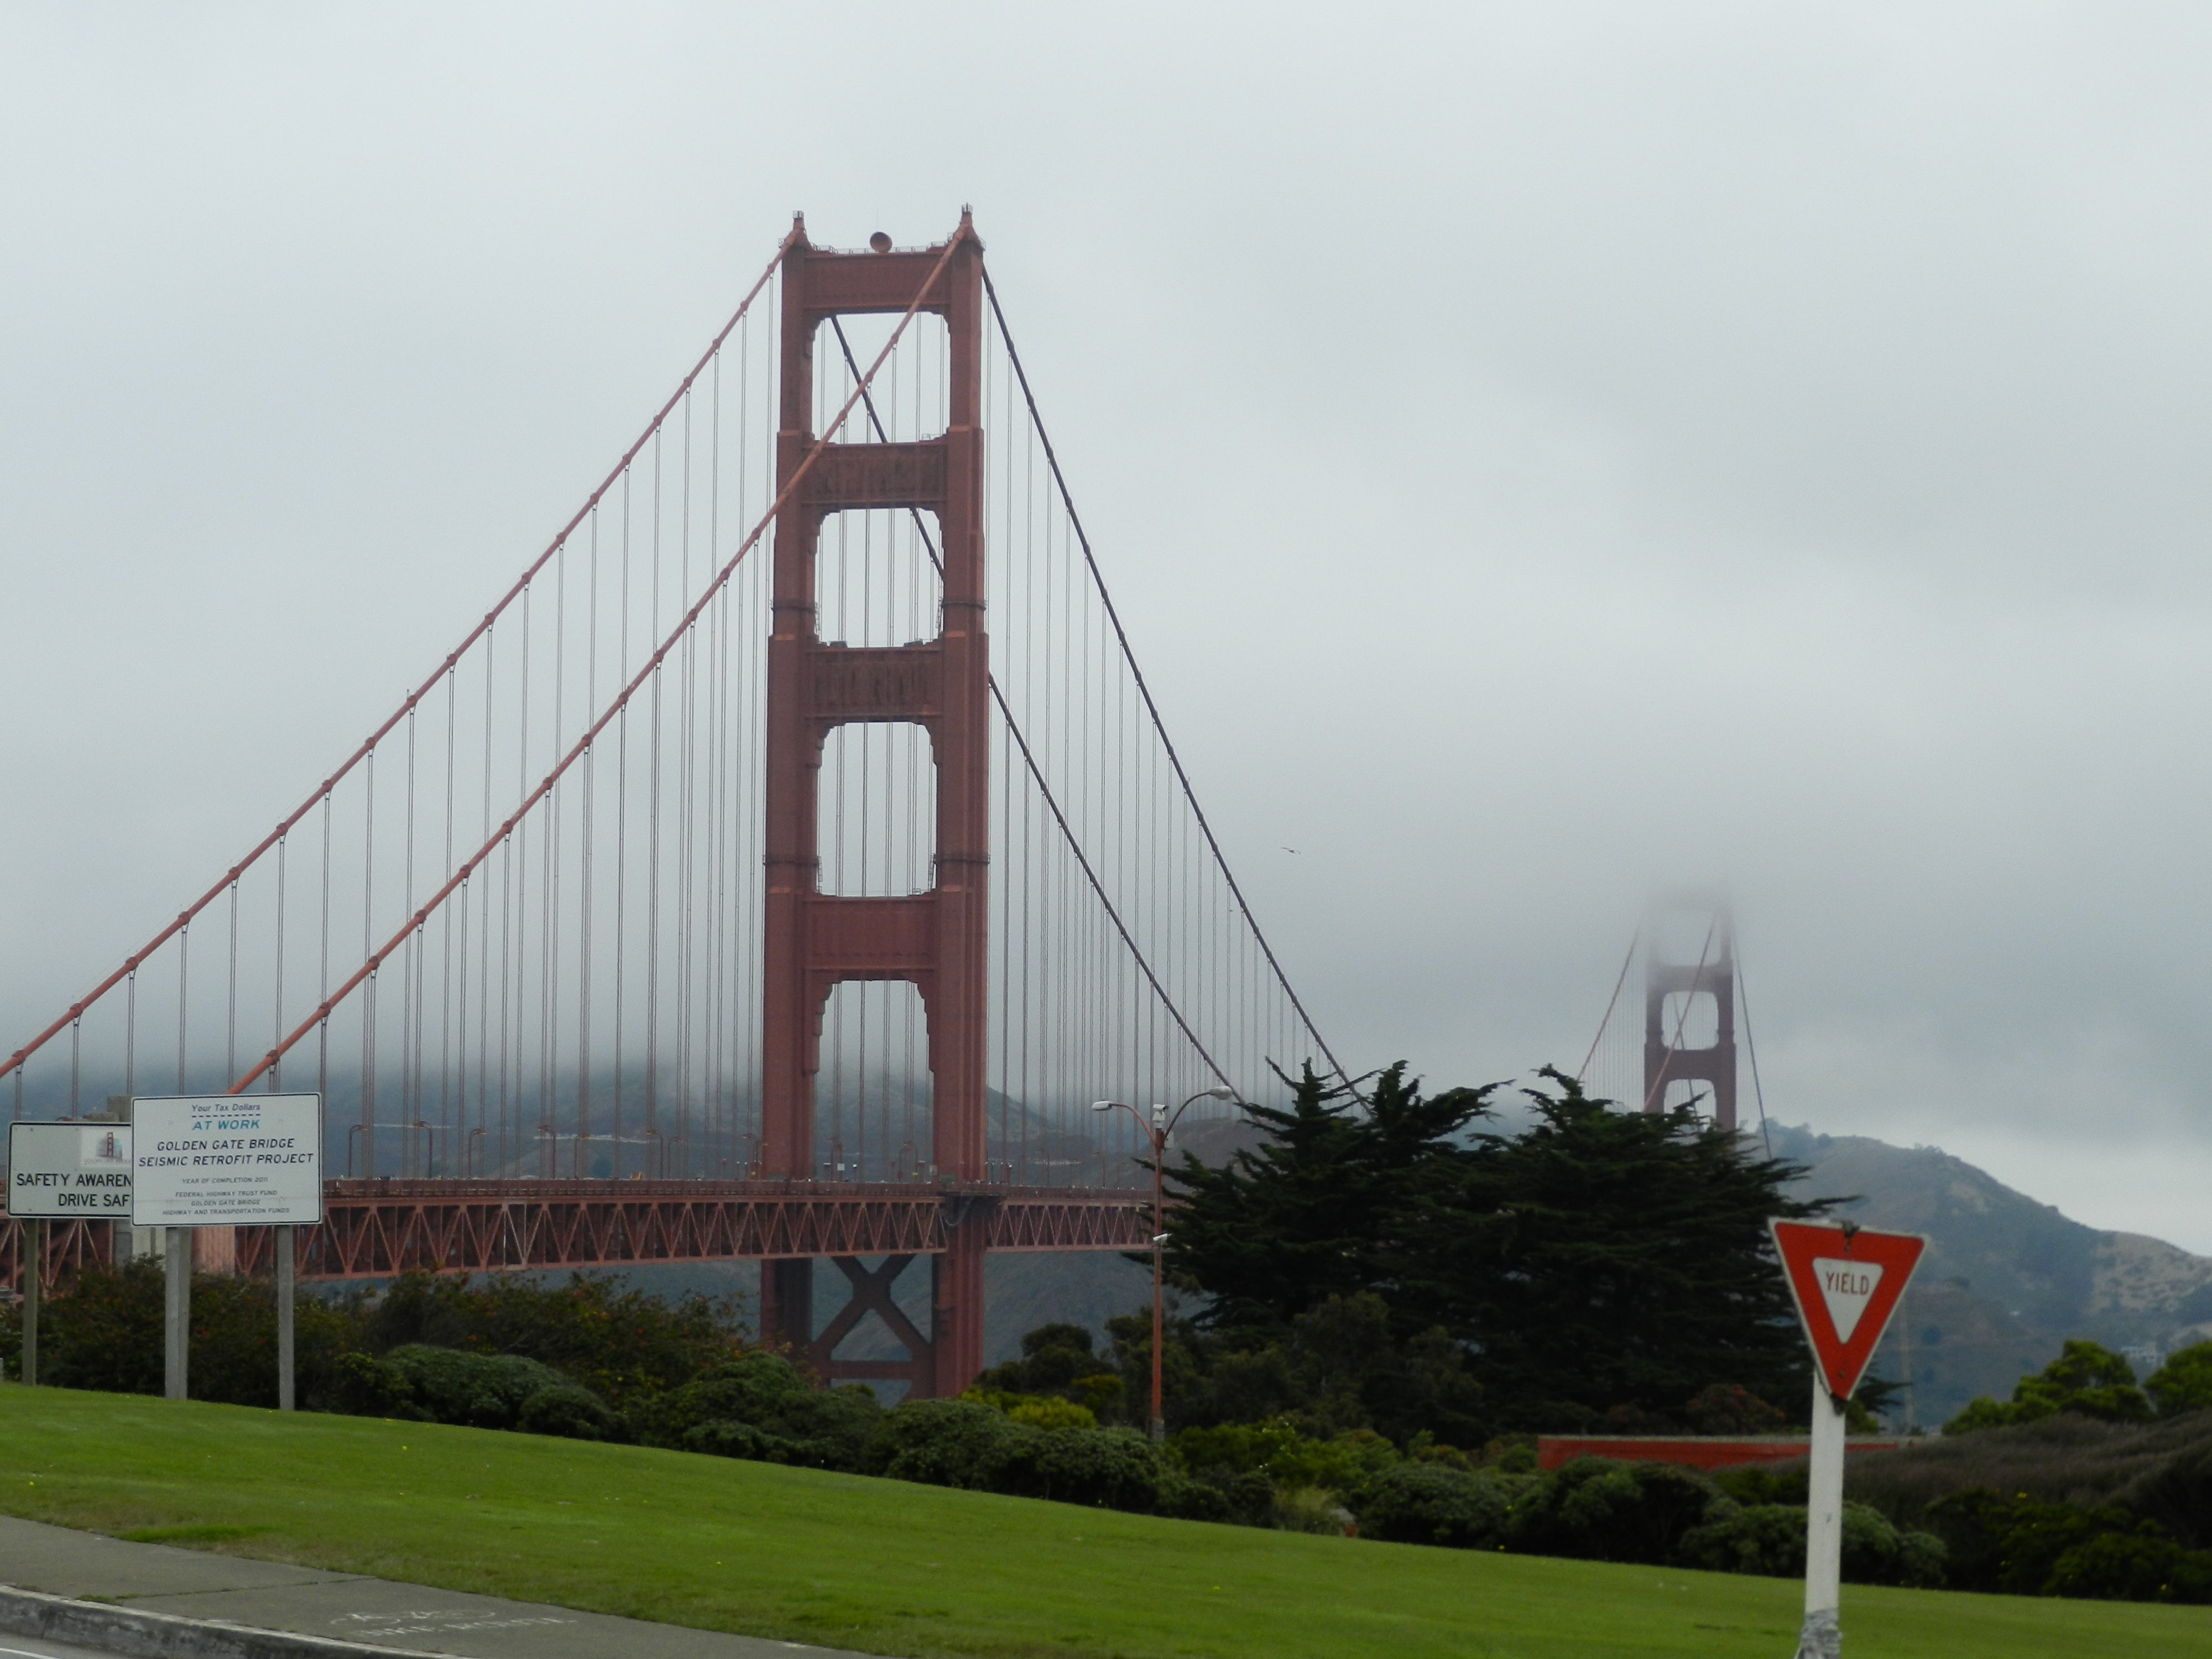 Puente en Puente Golden Gate